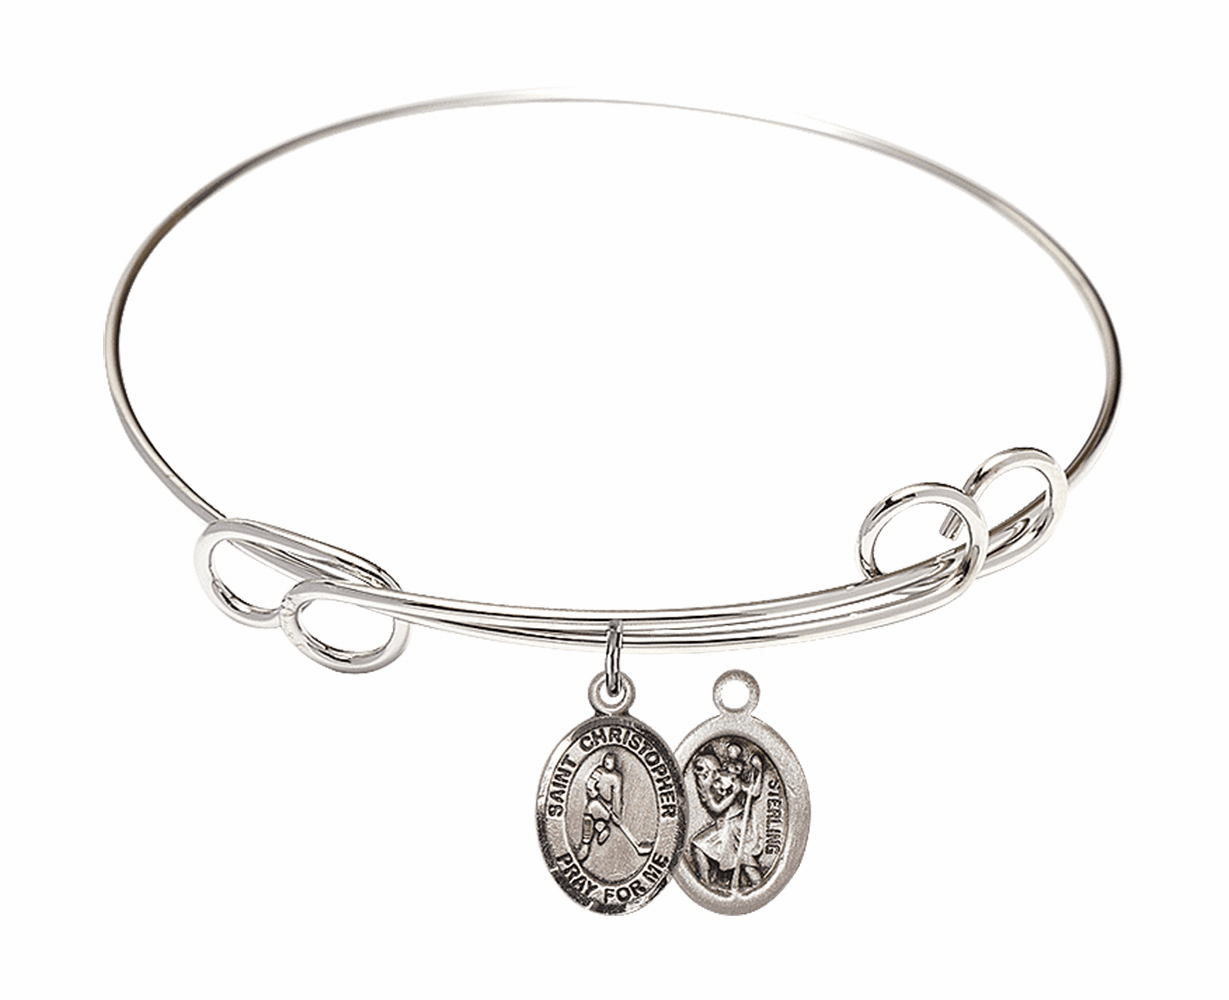 Round Loop St Christopher Ice Hockey Bangle Charm Bracelet by Bliss